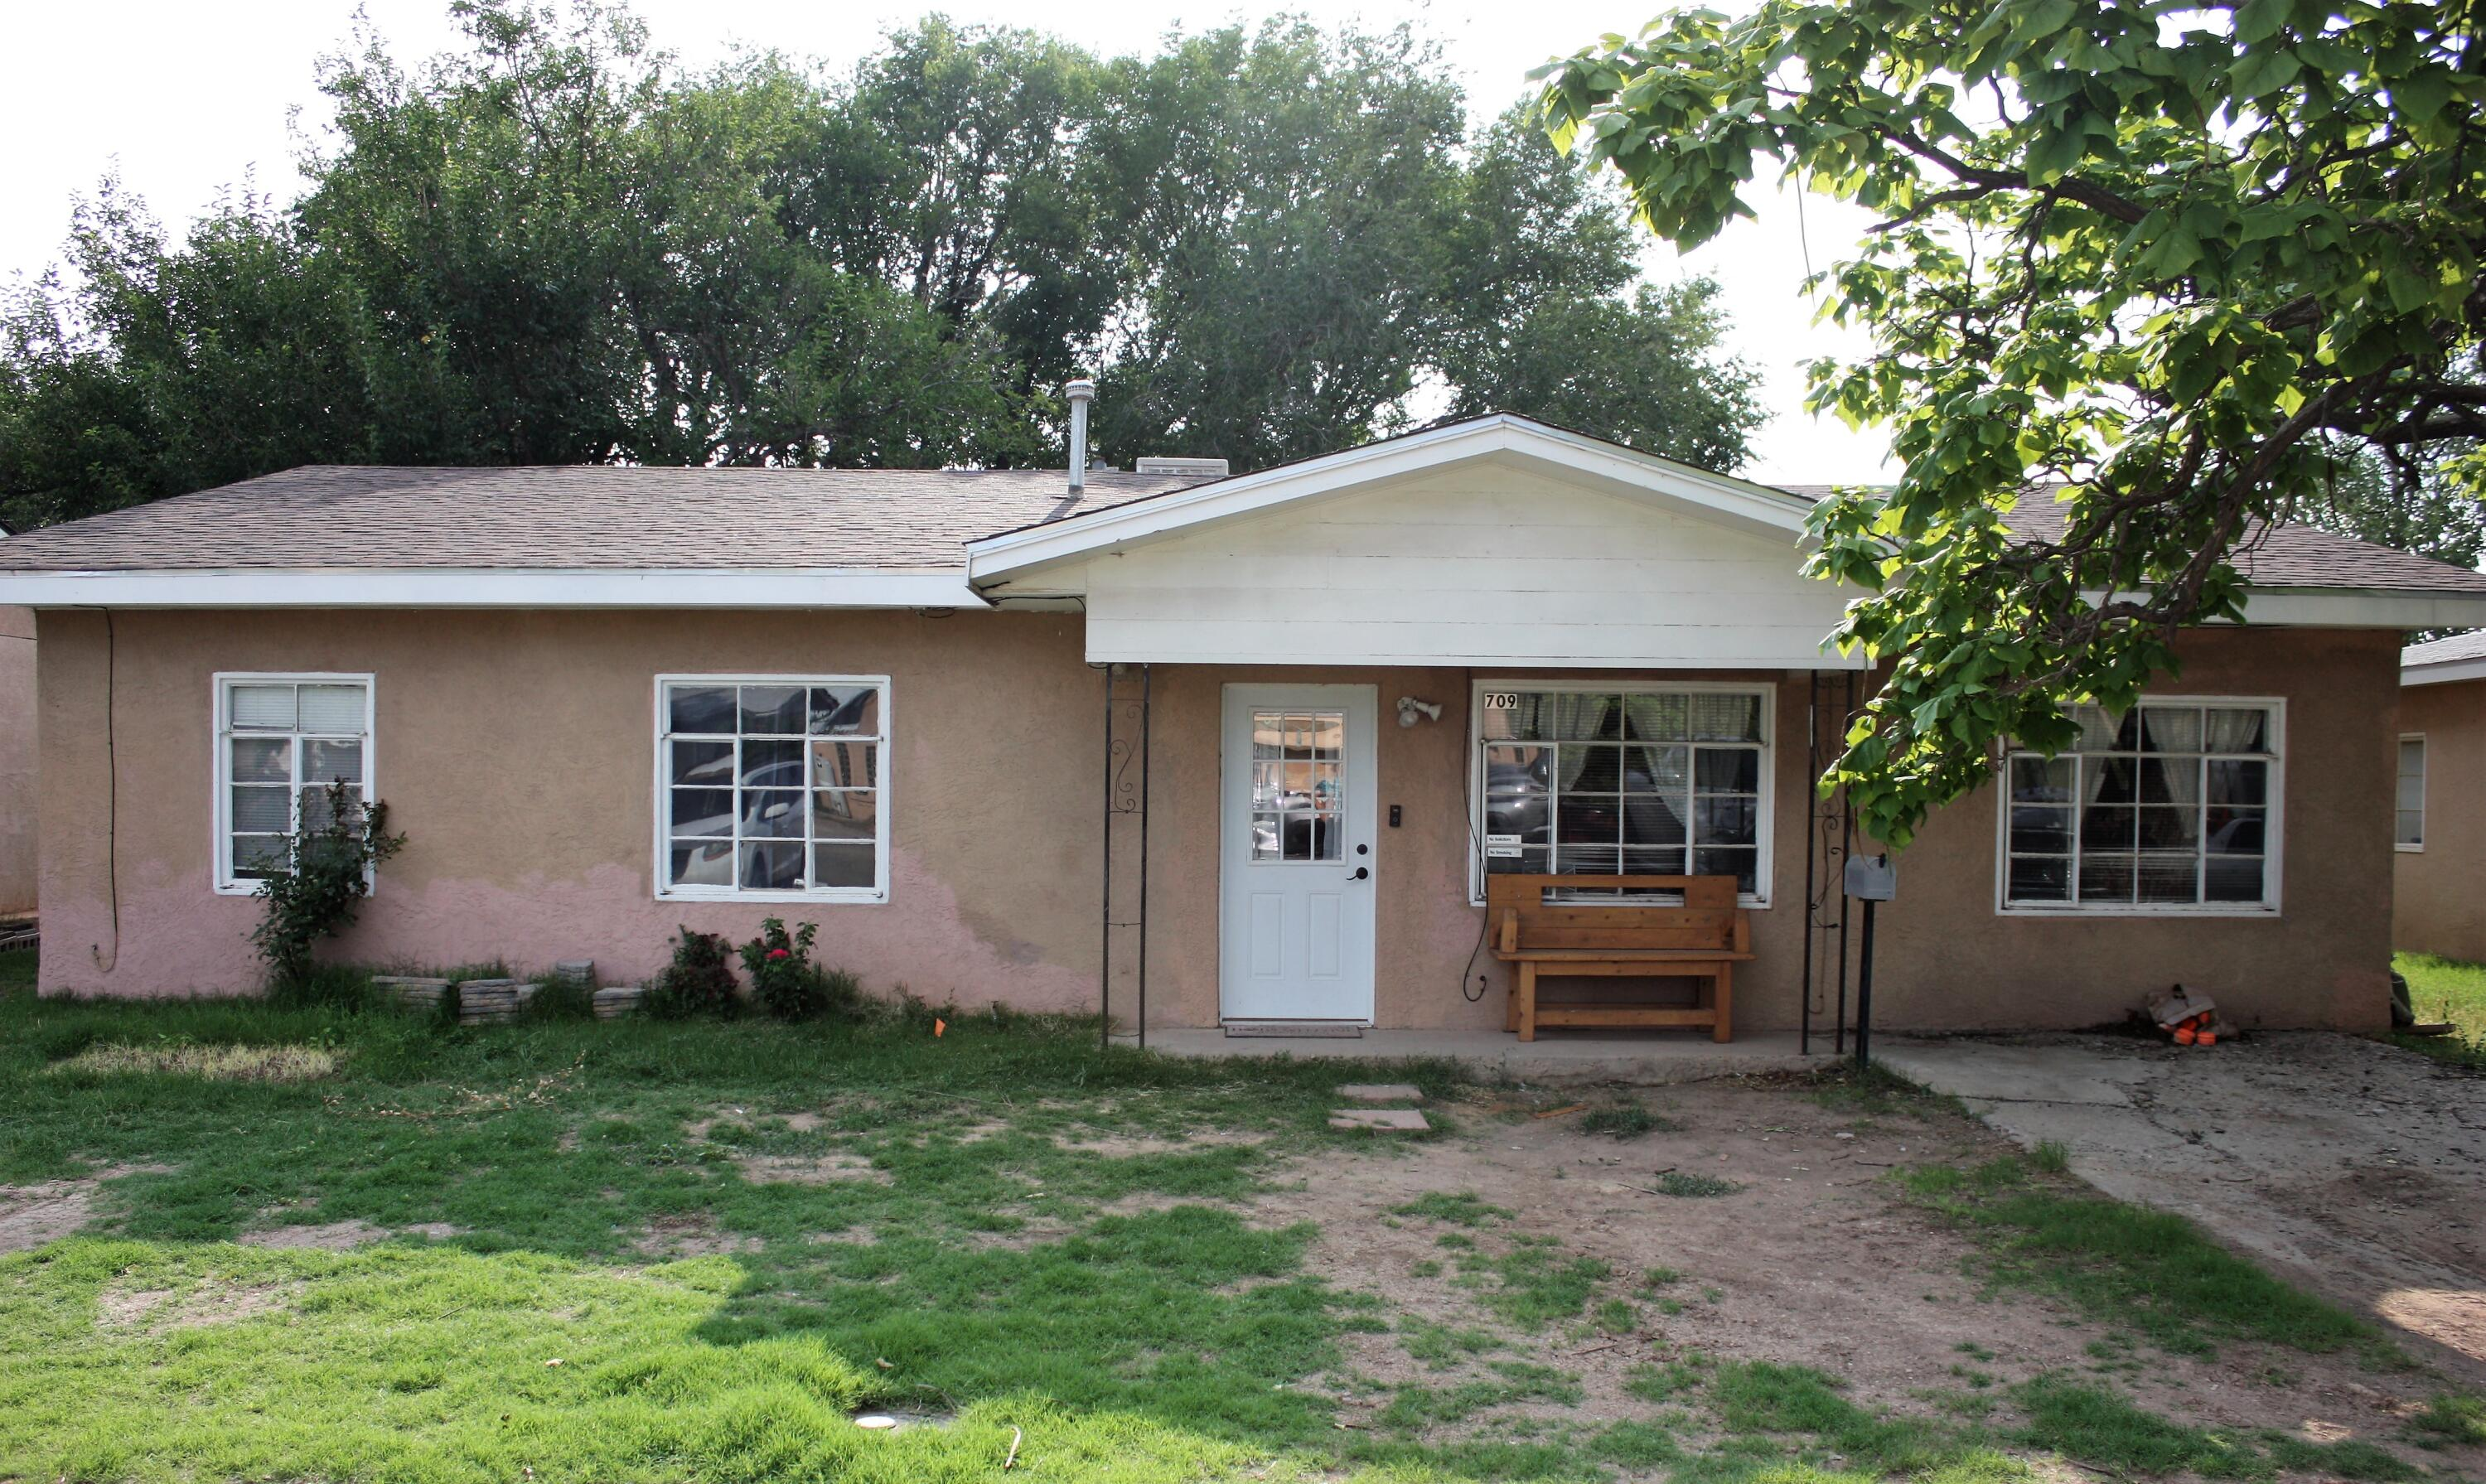 Nice 3 bedroom home with lots of character in heart of Belen. Nice kitchen update and possible second living room or possible 4th bedroom. Close to shopping and schools. Large back porch and big utility room complete this home. Great price with lots of potential.